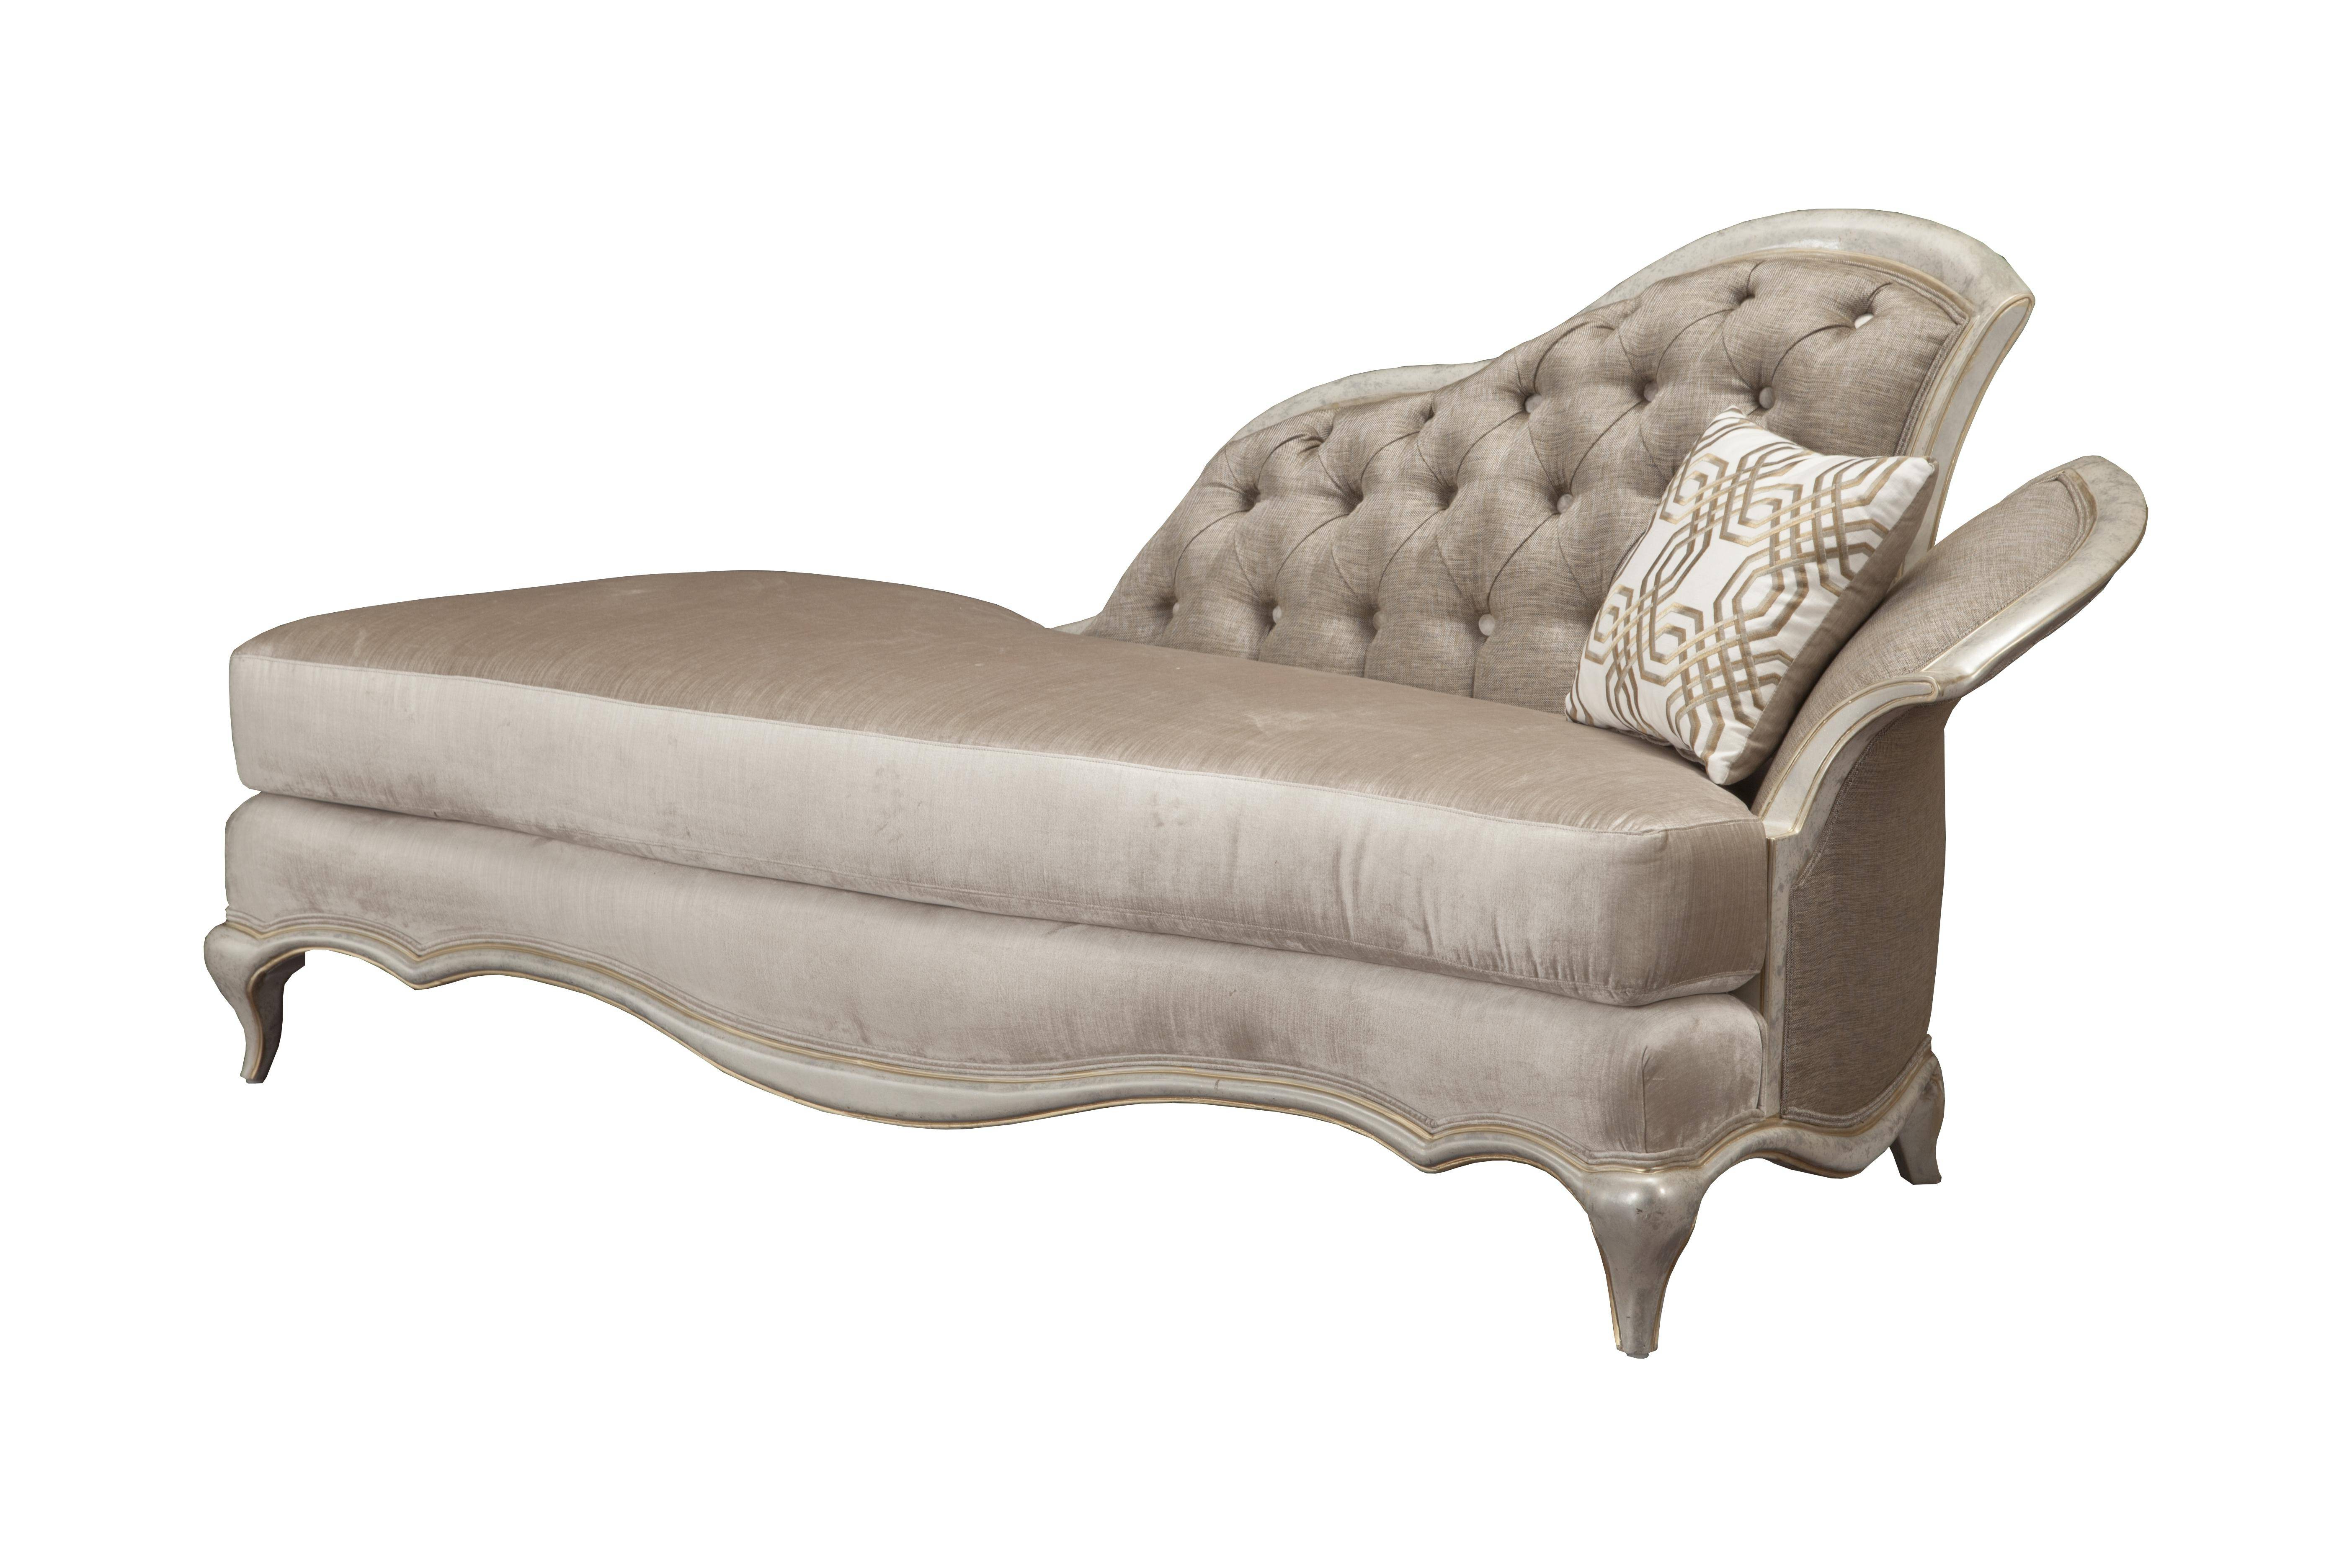 Benetti's Perlita Luxury Beige Pearl Silk Chenille Silver Gold Chaise Lounge Within Most Recently Released Pearl Chaise Lounges (View 2 of 25)